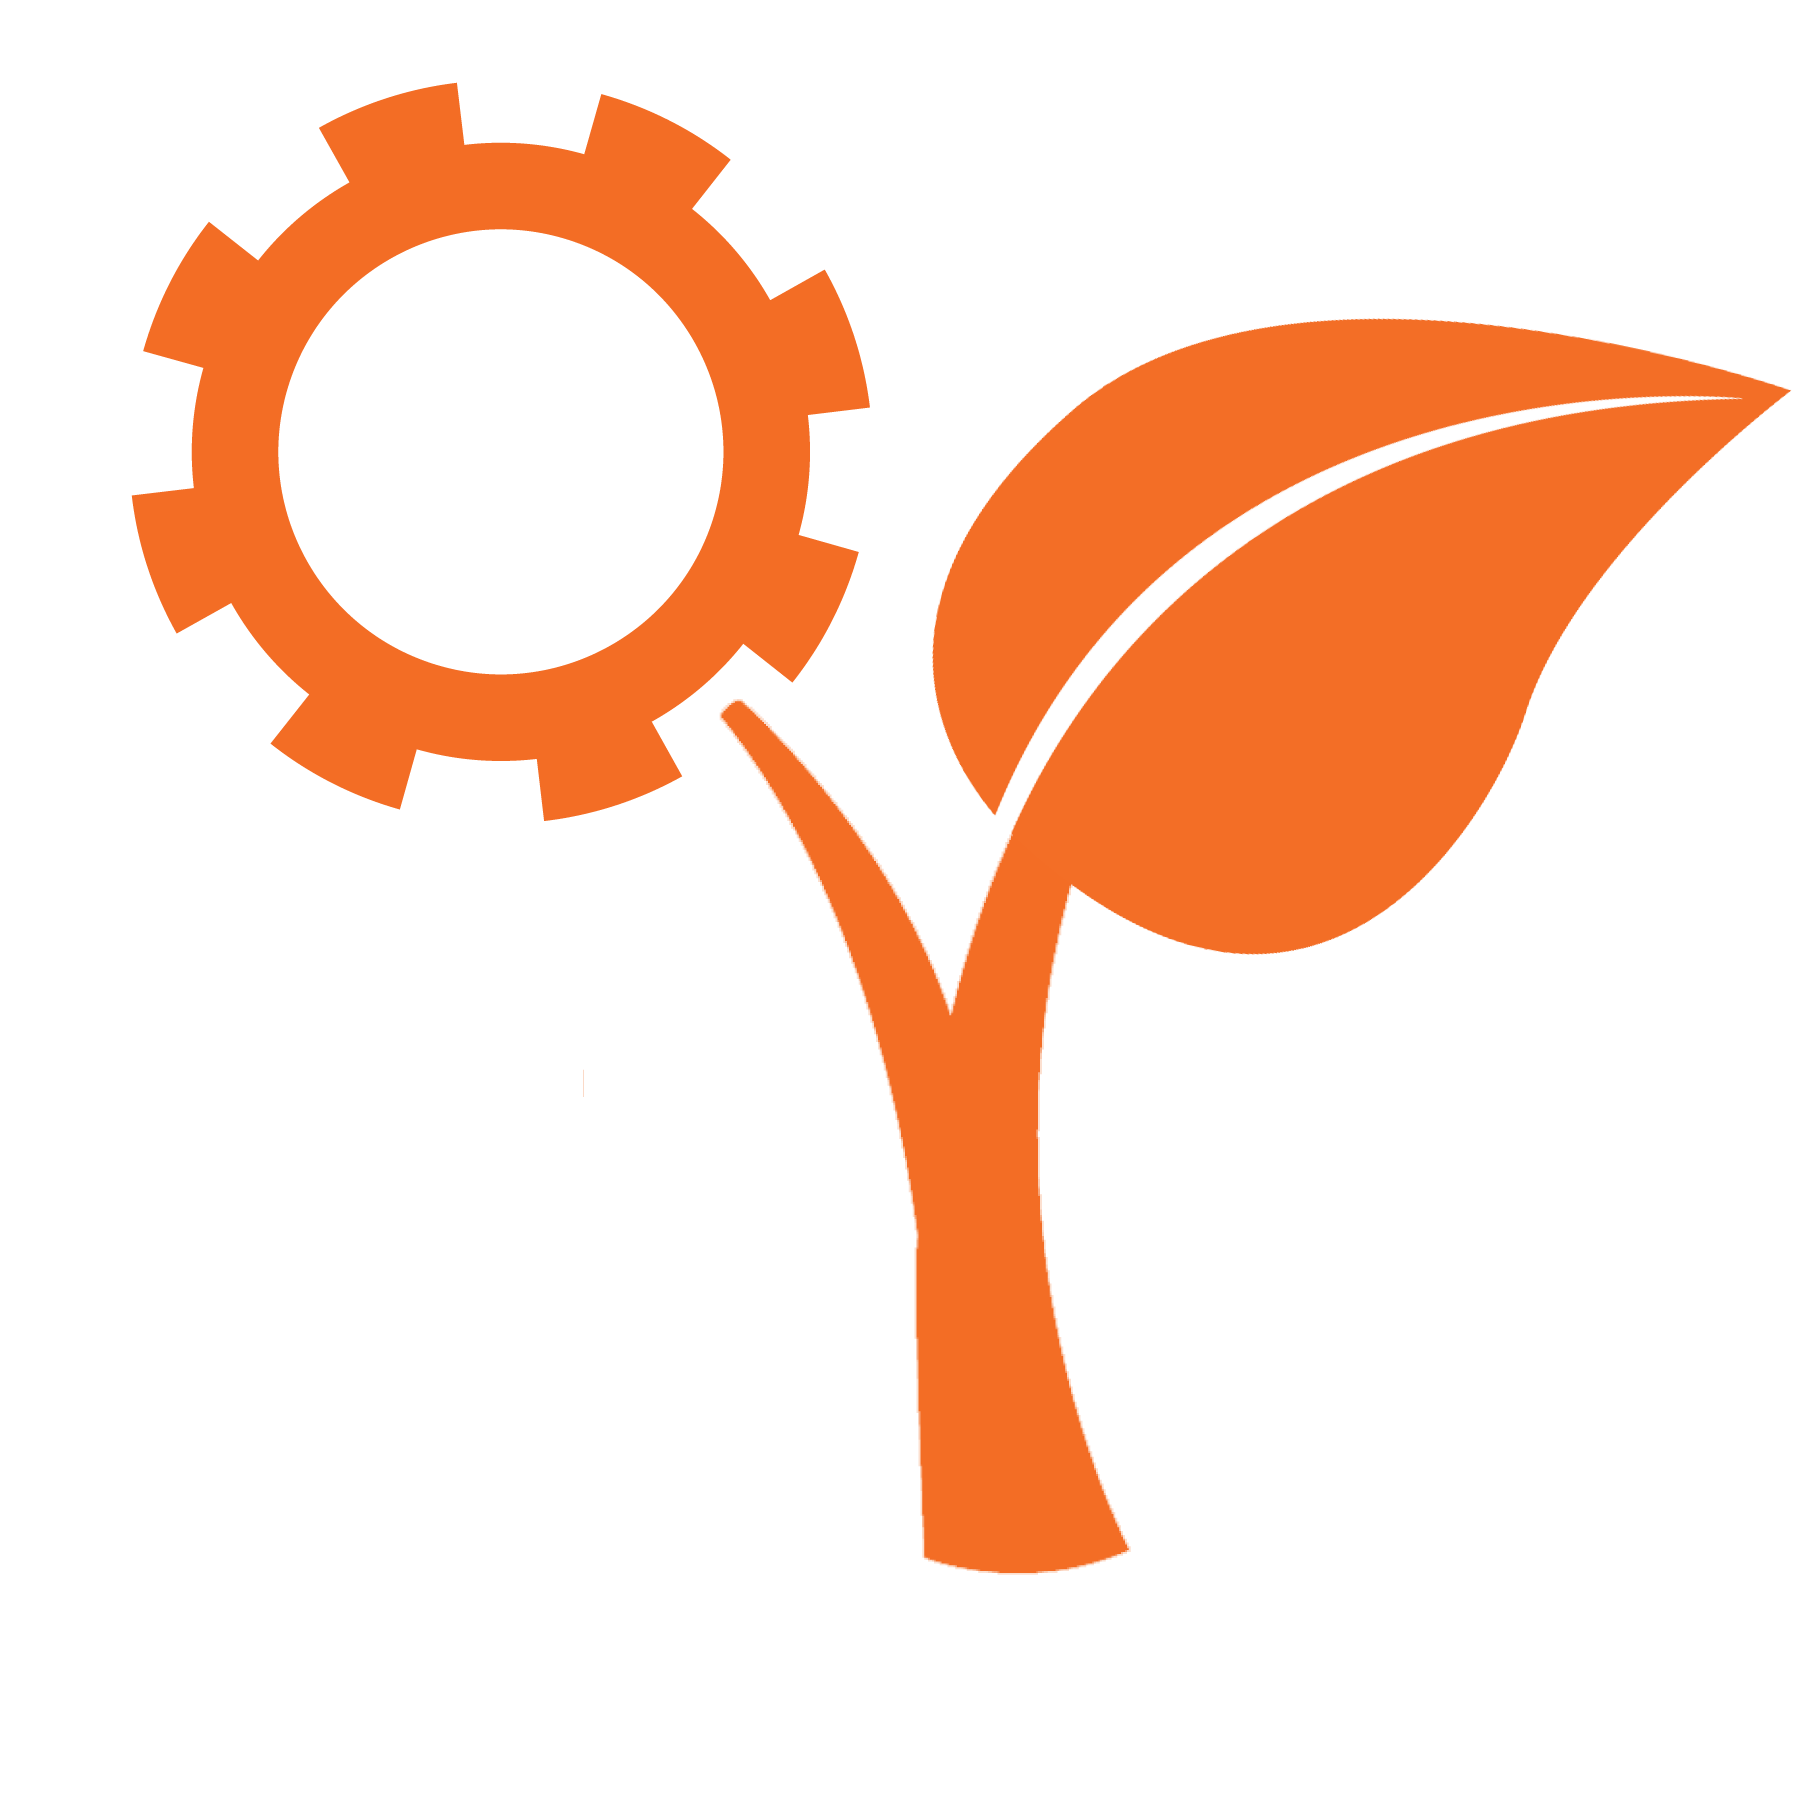 Leaf IoT software icon